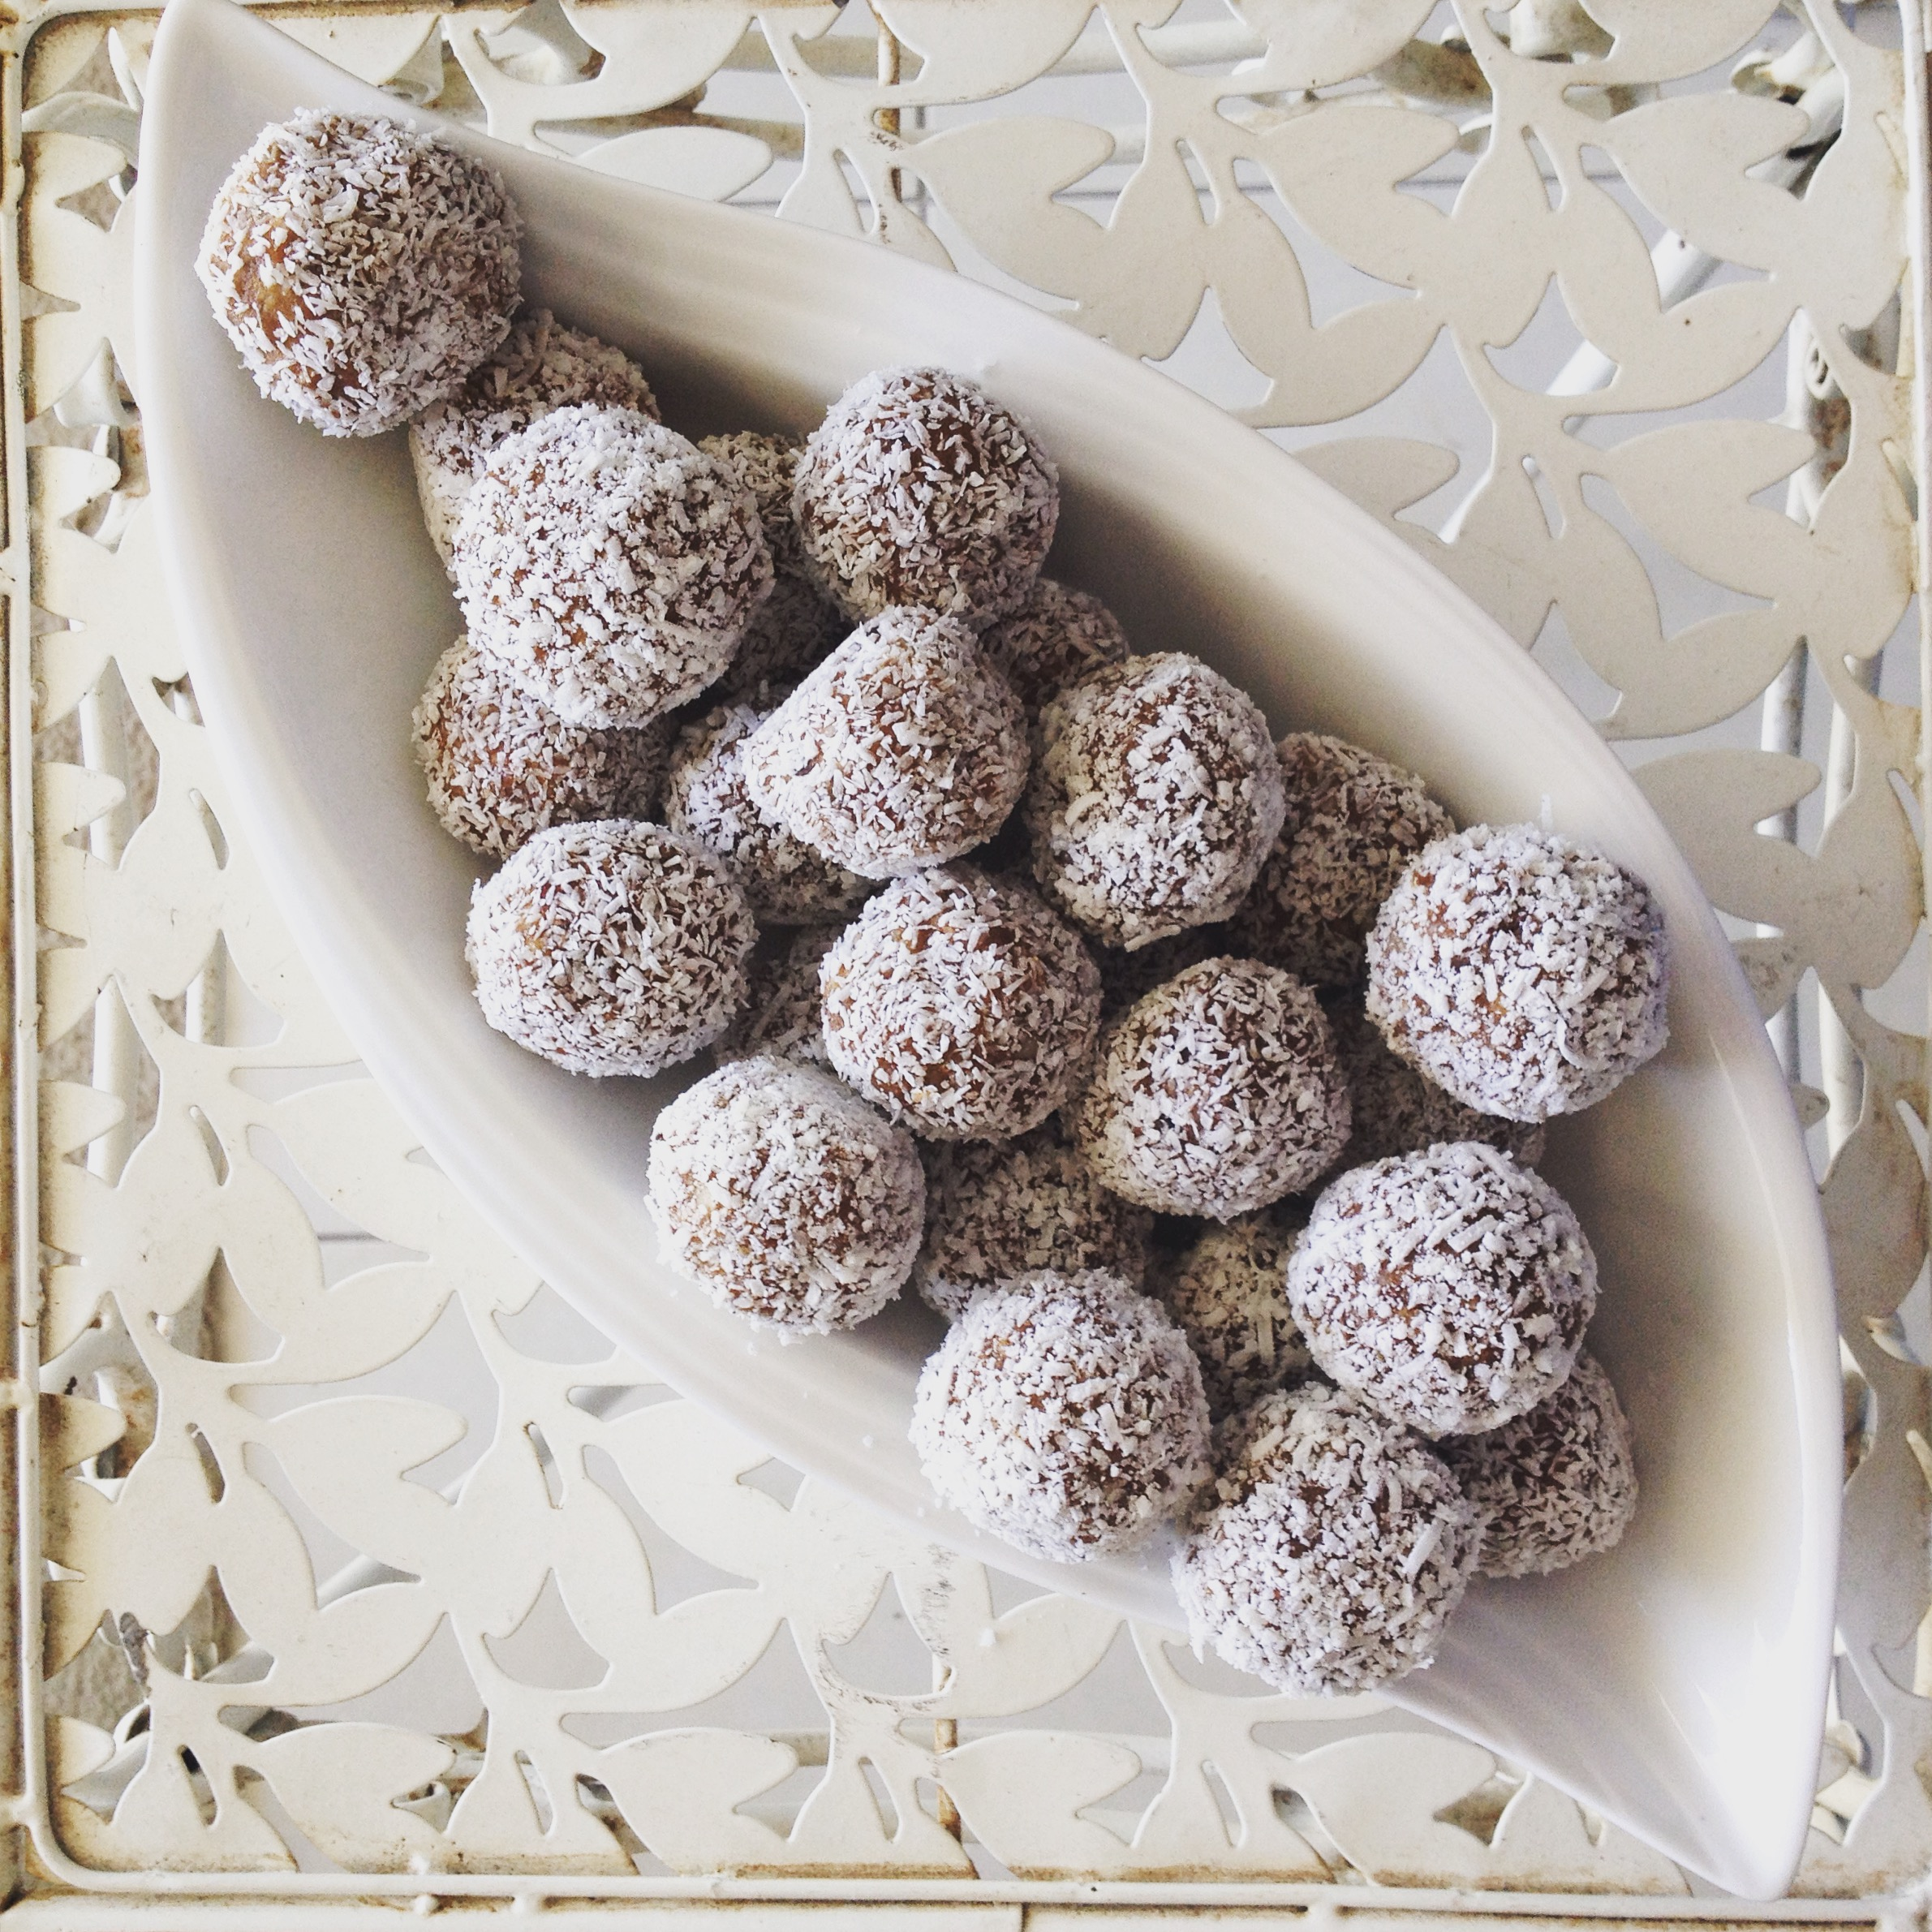 Unleash-Fit-Living-Choc-Mint-Bliss-Balls.jpg